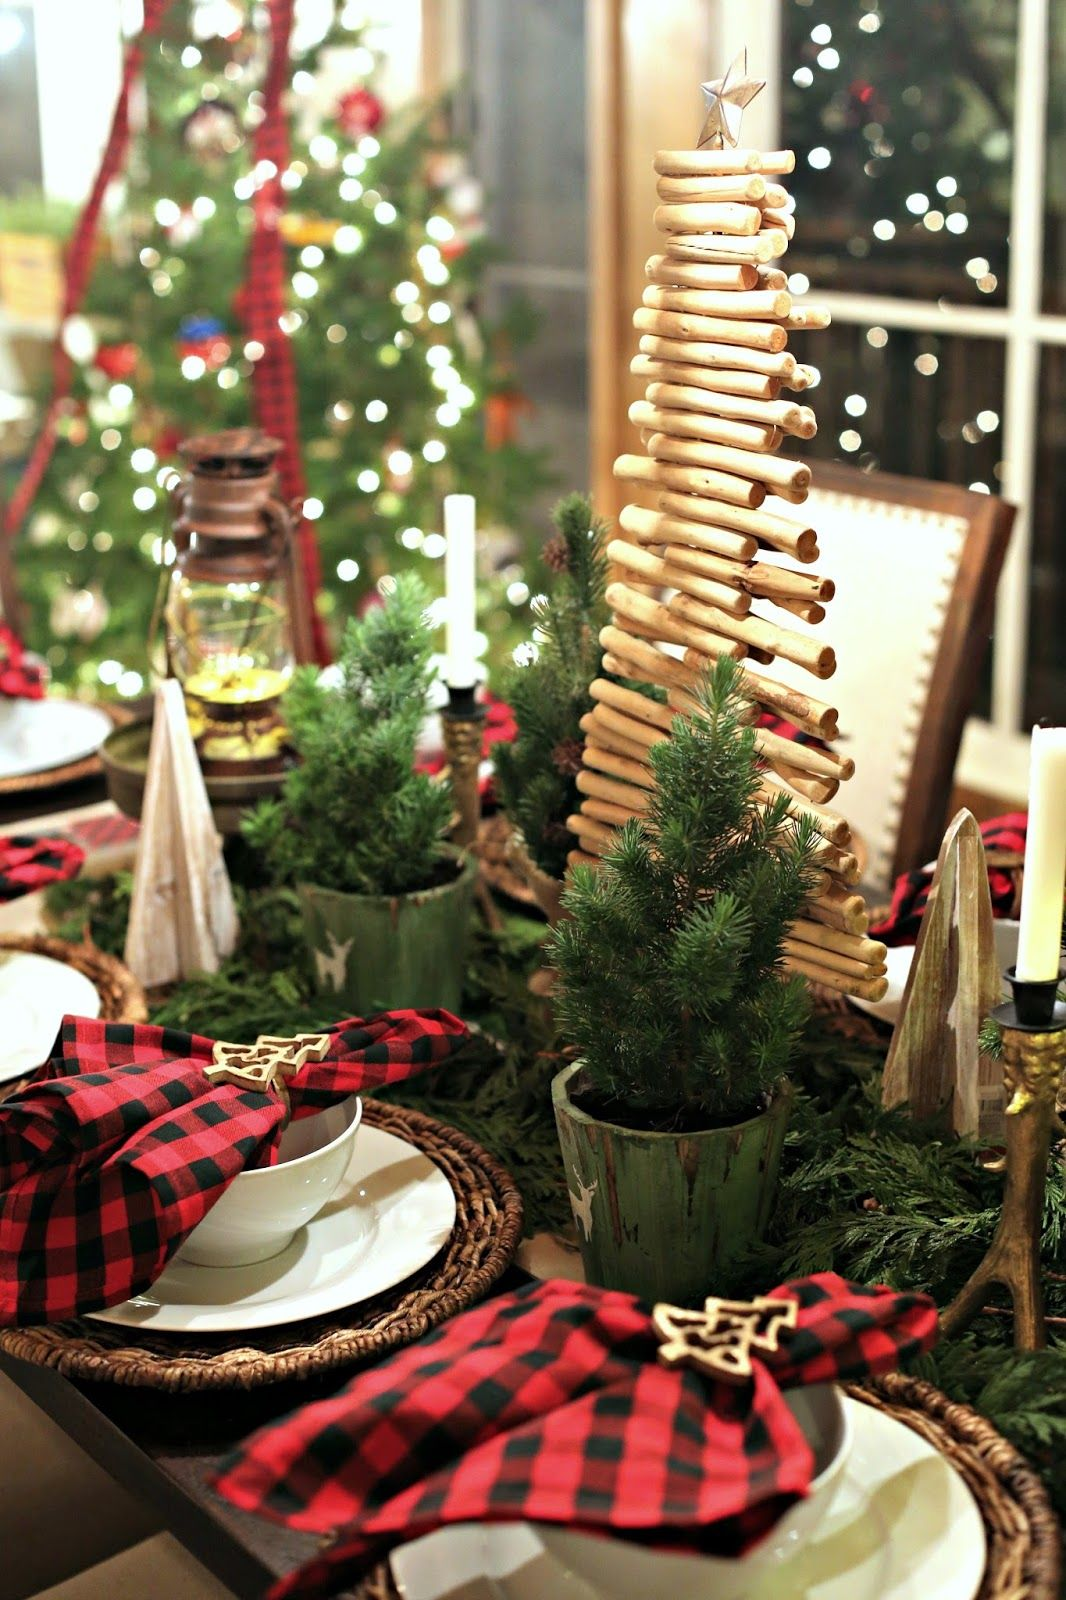 Holiday Home Tour, Guest Blogger, Christmas Decor, Home Inspo, Pottery  Barn, Plaid, Ice Skates, Tablescape, World Market, Home Goods, Holiday  Wreath, ...